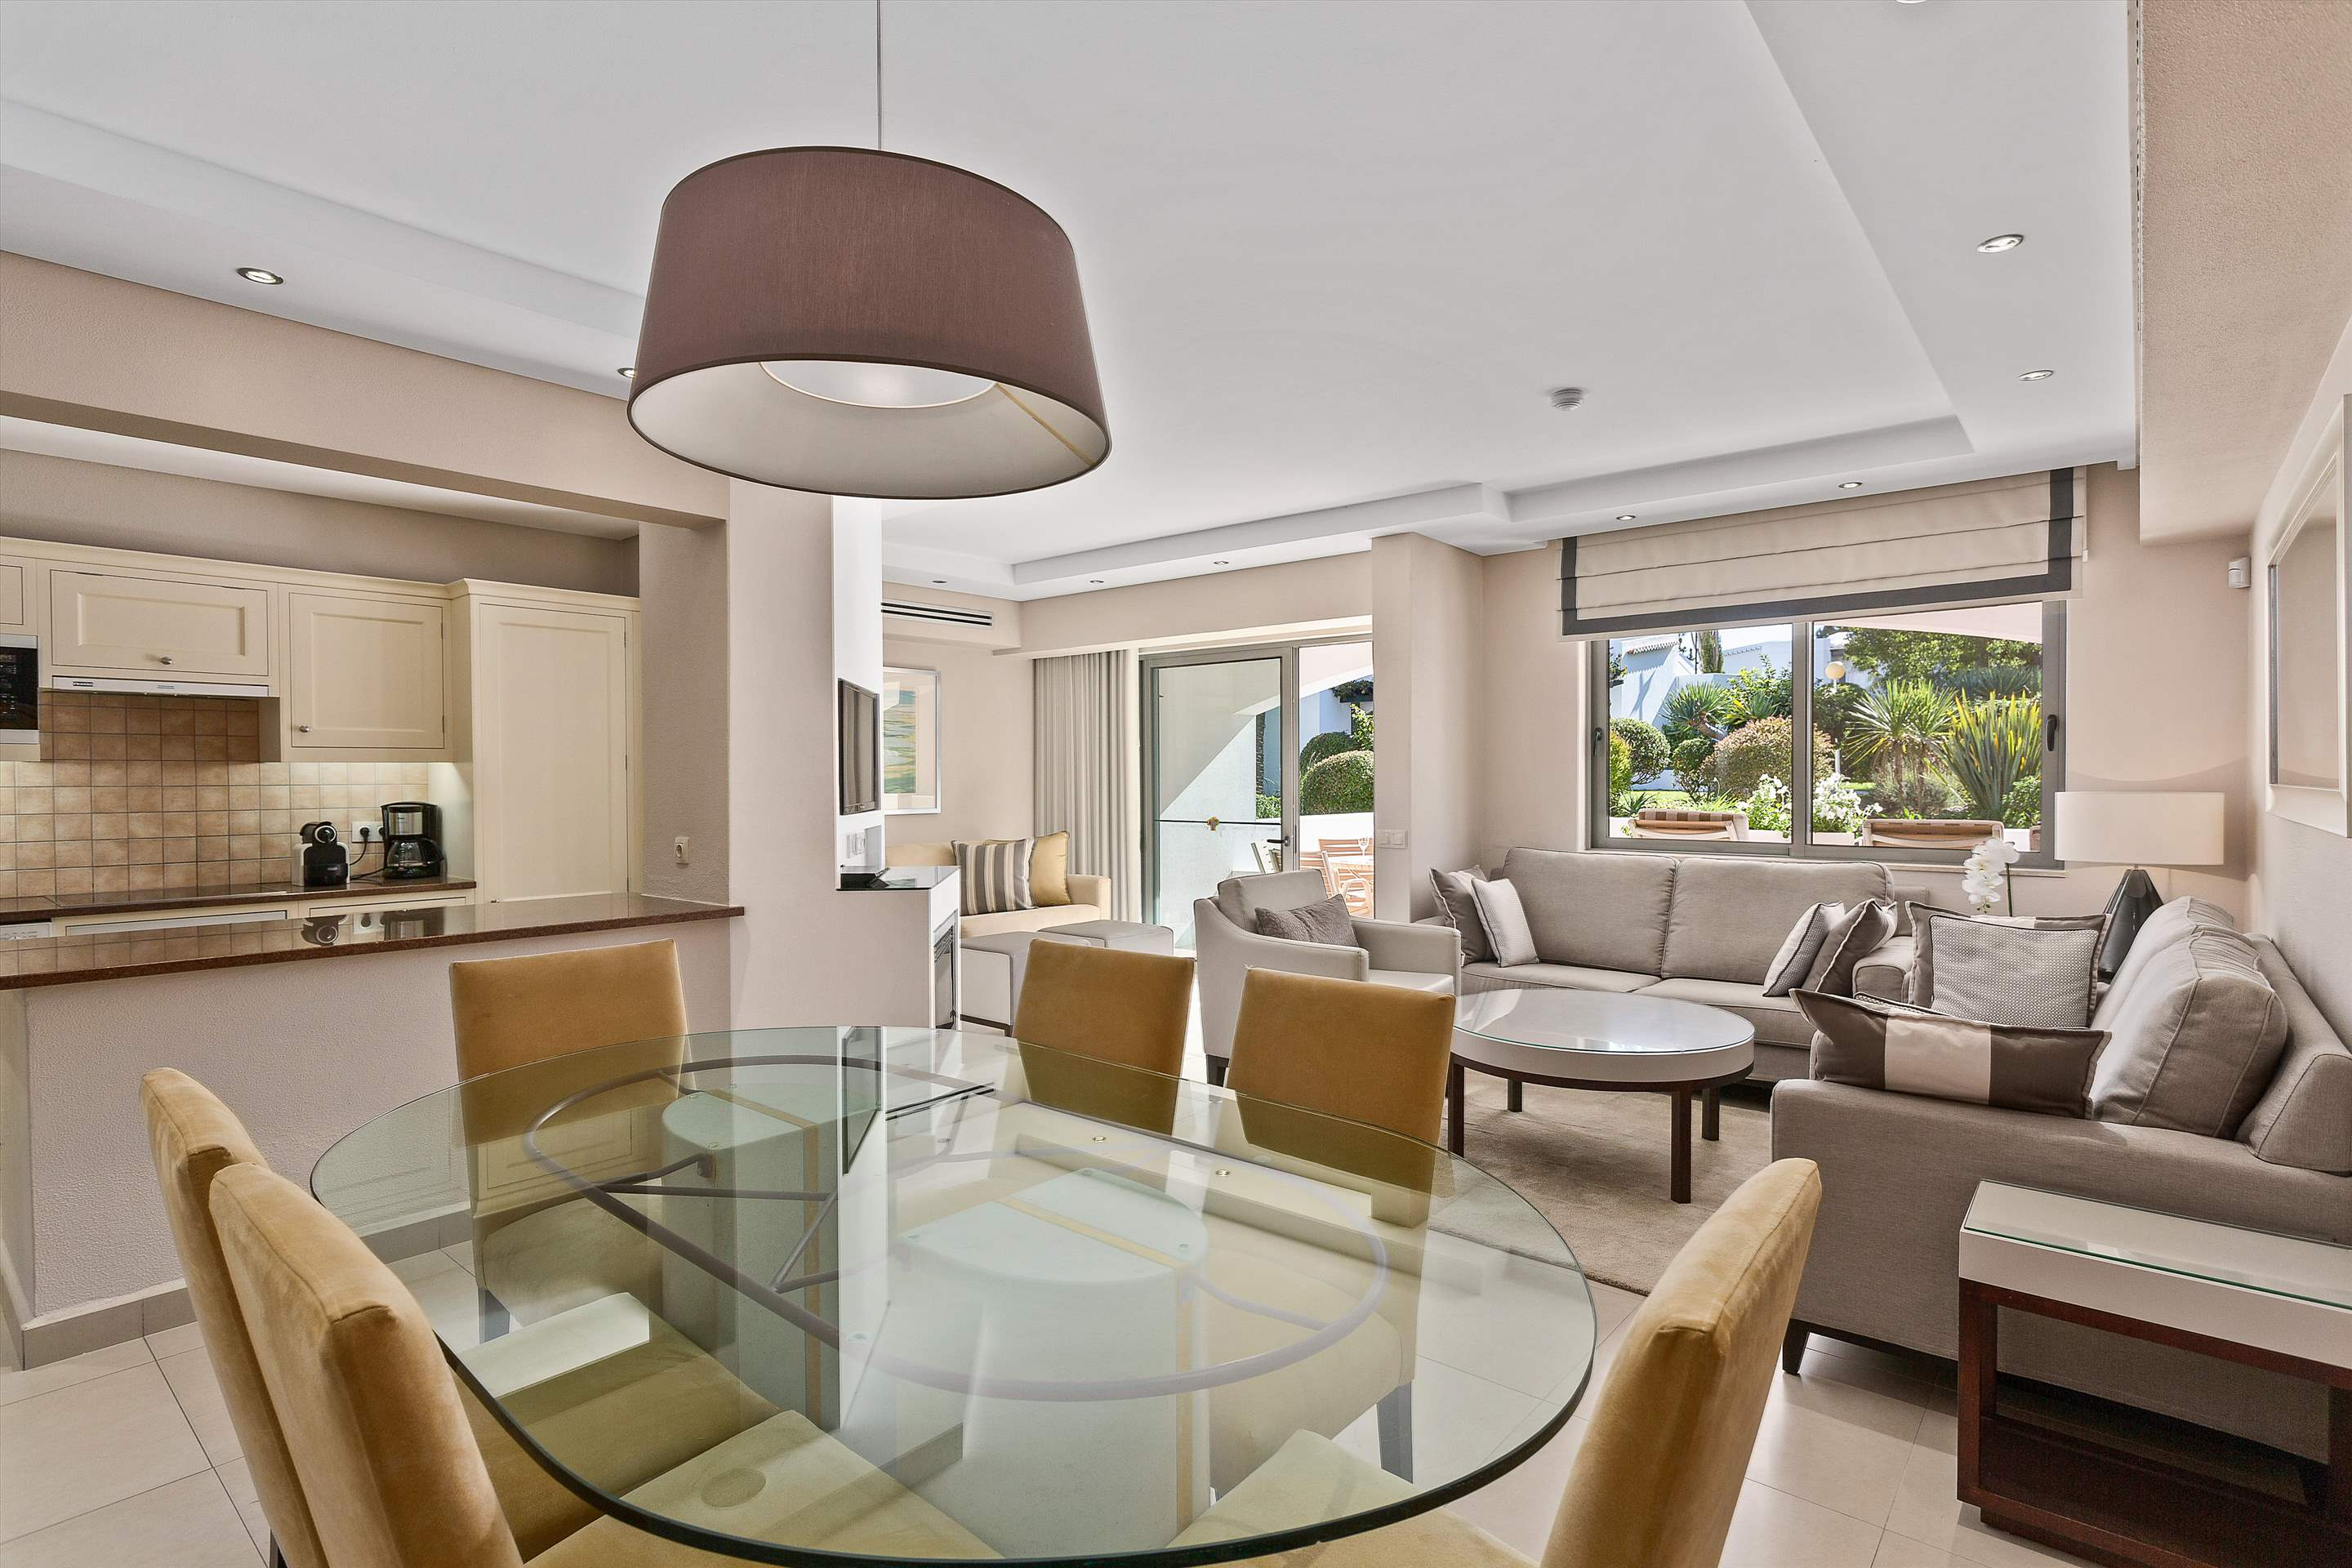 Four Seasons Country Club 2 bed, Superior - Saturday Arrival, 2 bedroom apartment in Four Seasons Country Club, Algarve Photo #5